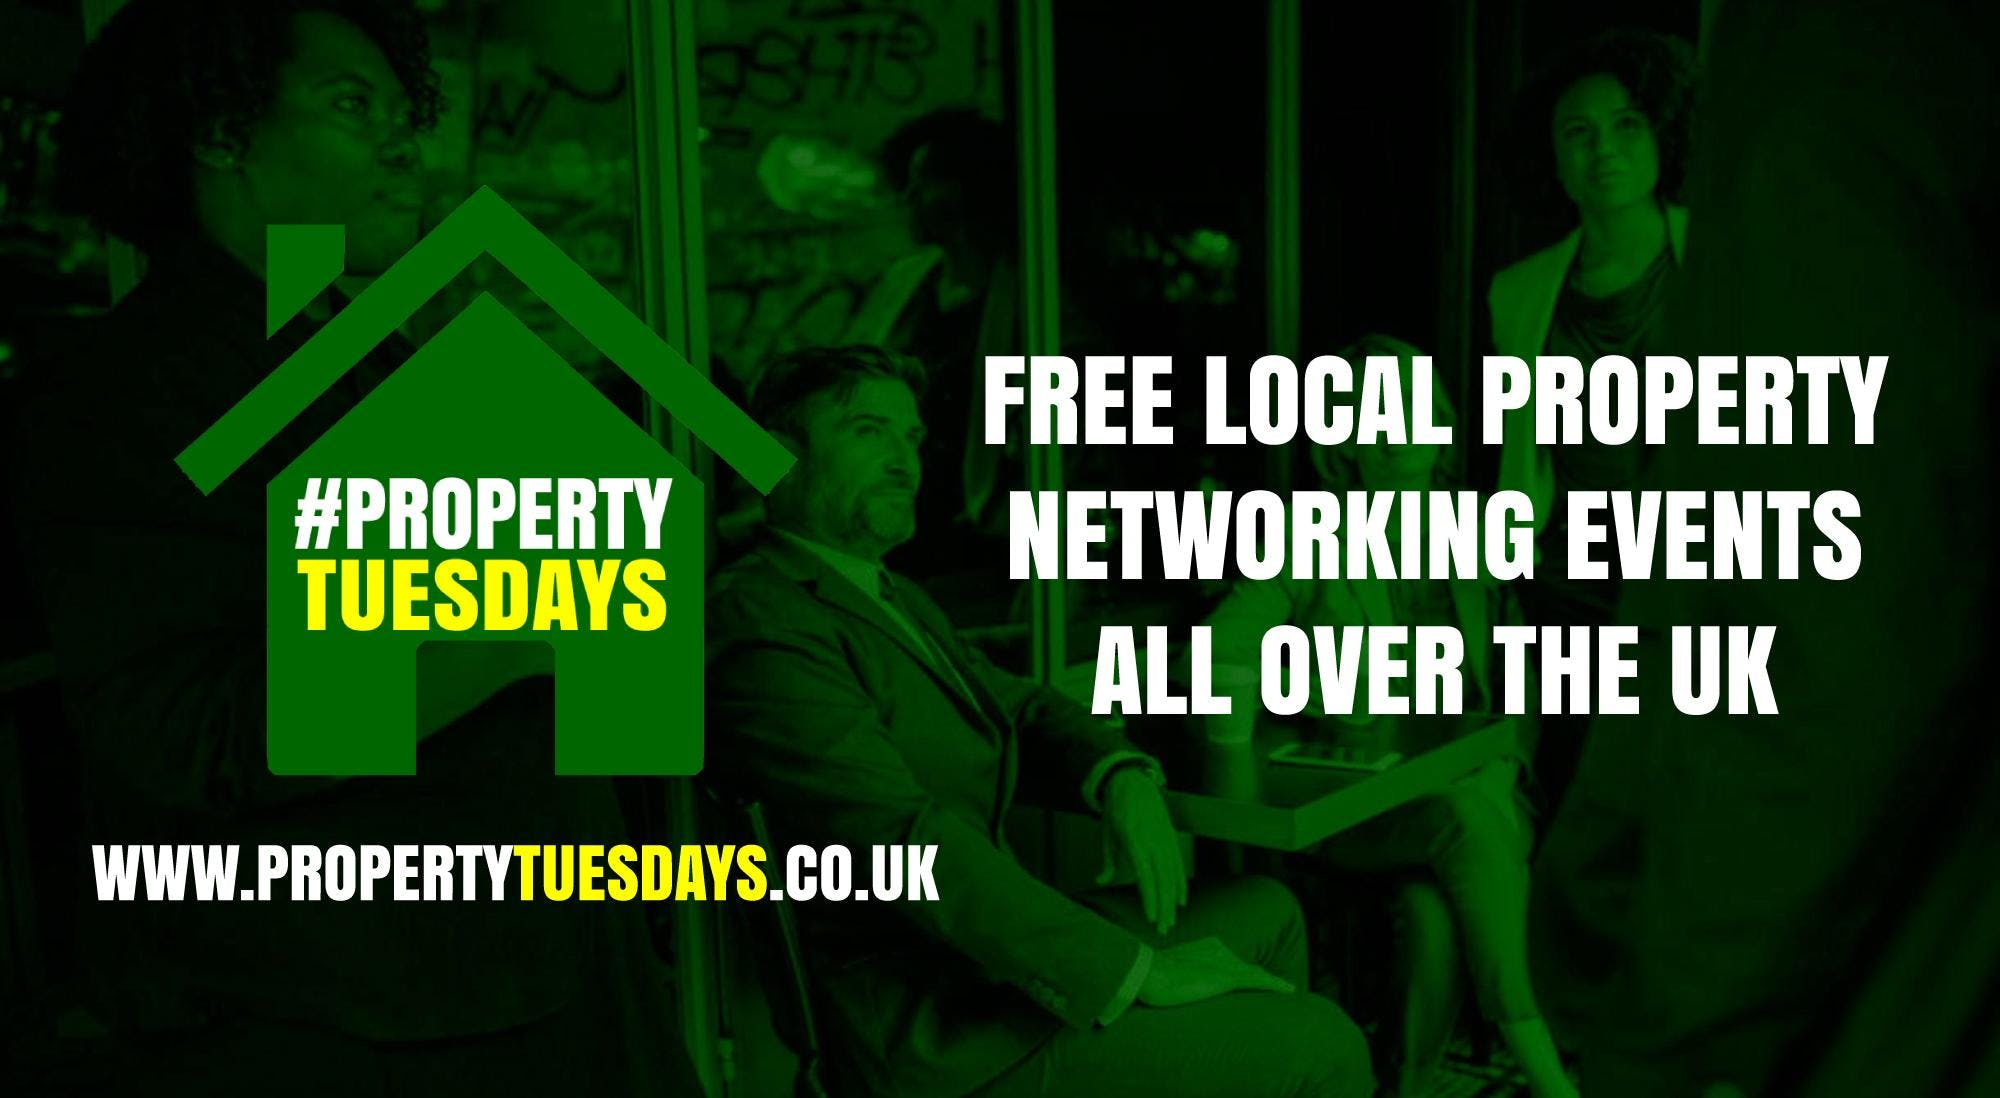 Property Tuesdays! Free property networking event in Henley-on-Thames